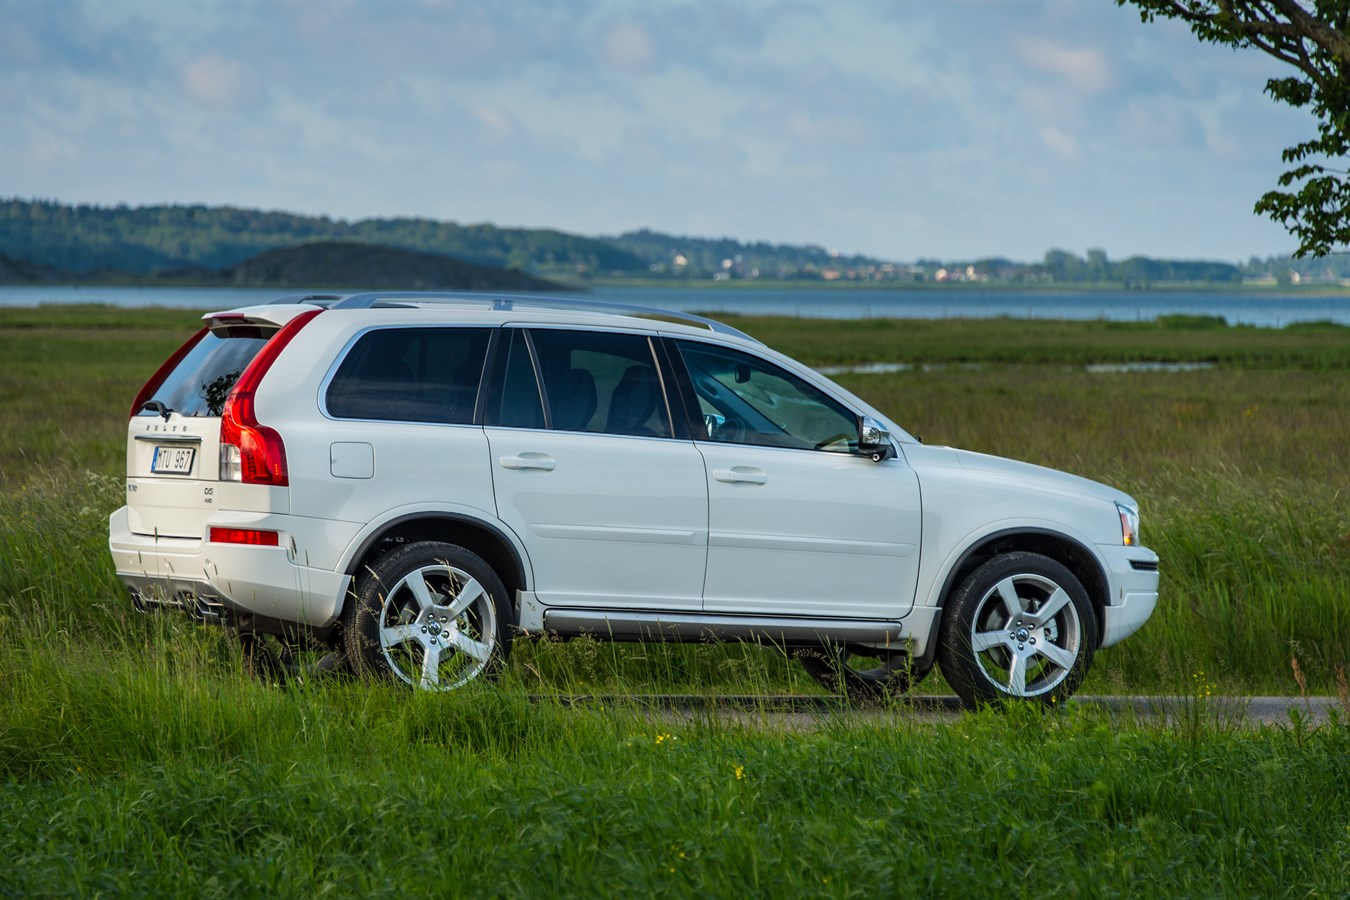 Volvo xc90 still one of the safest cars on the market volvo car group global media newsroom